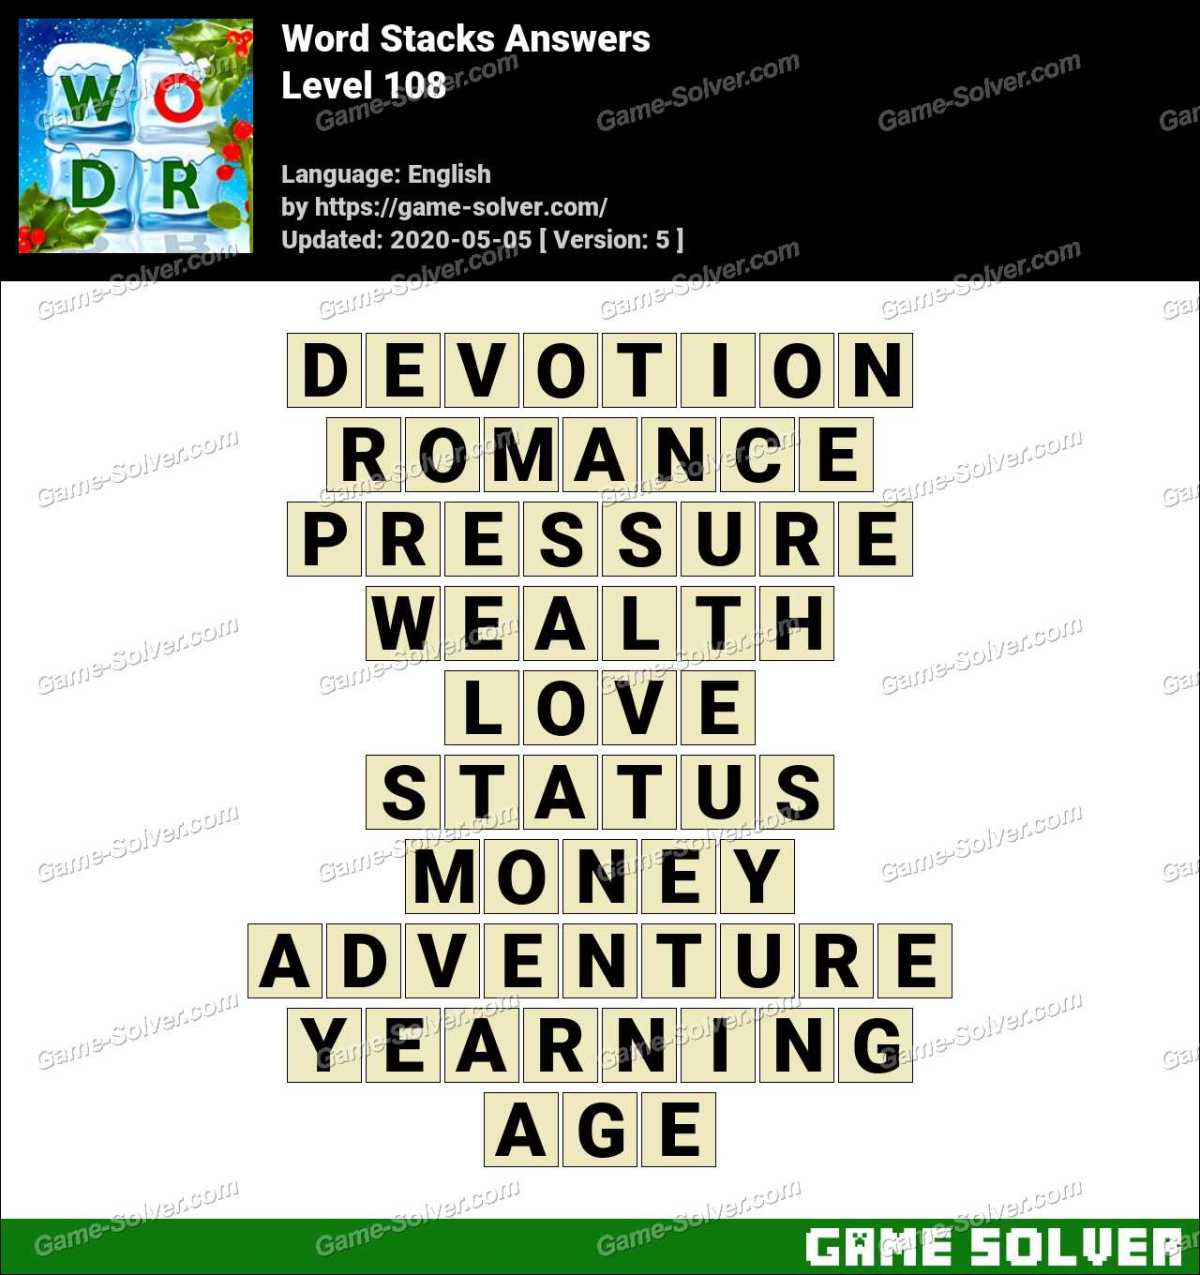 Word Stacks Level 108 Answers